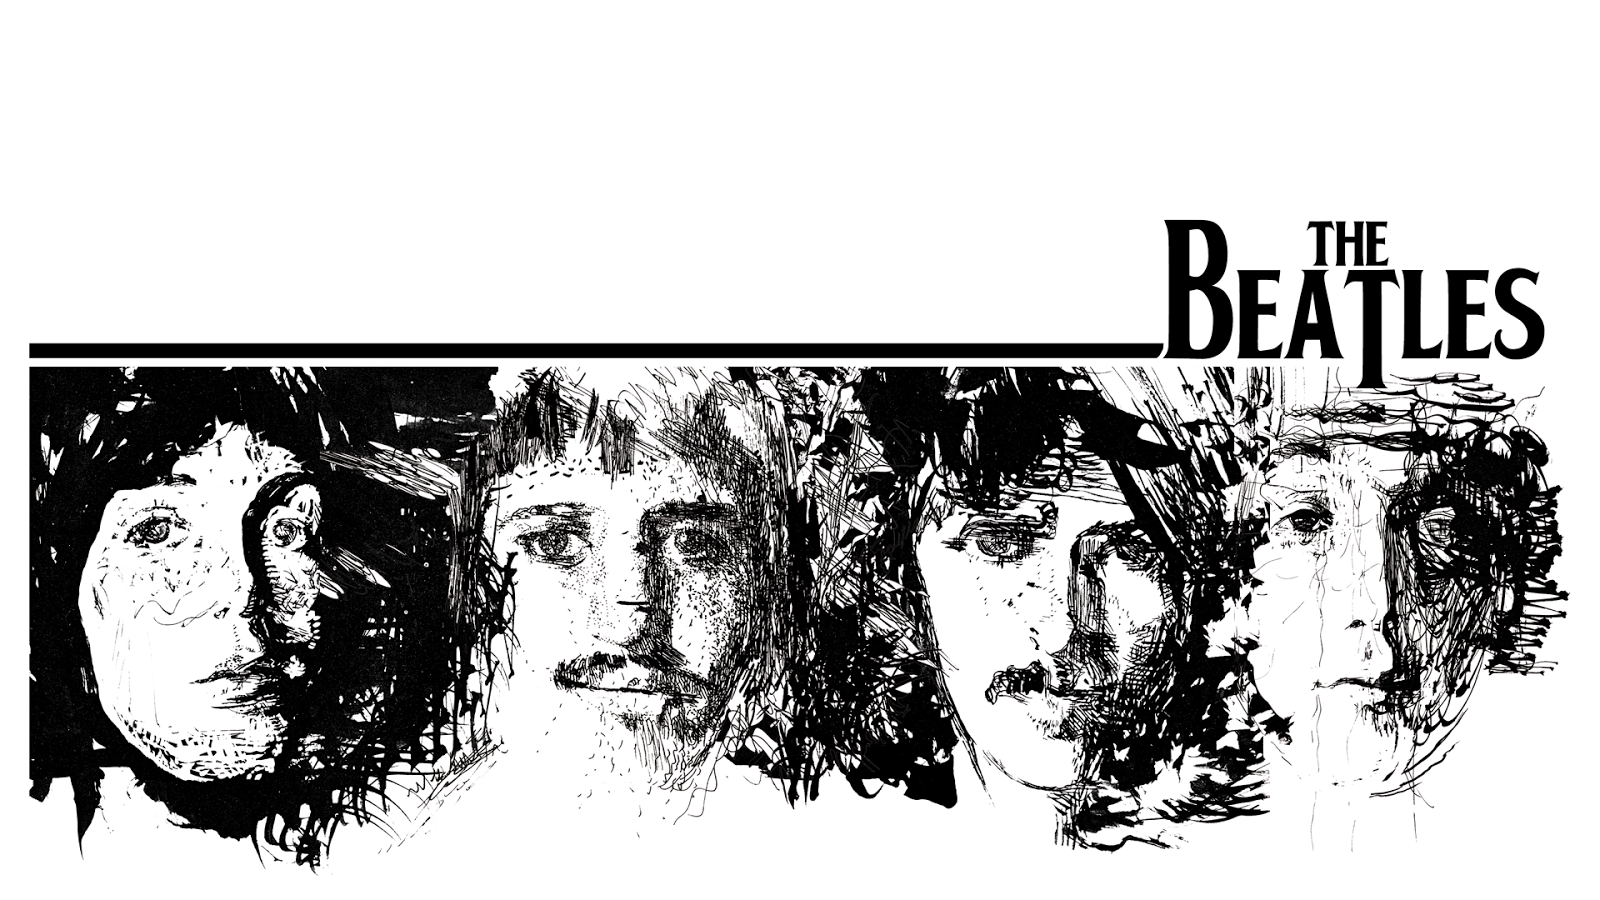 The Beatles Wallpaper 19